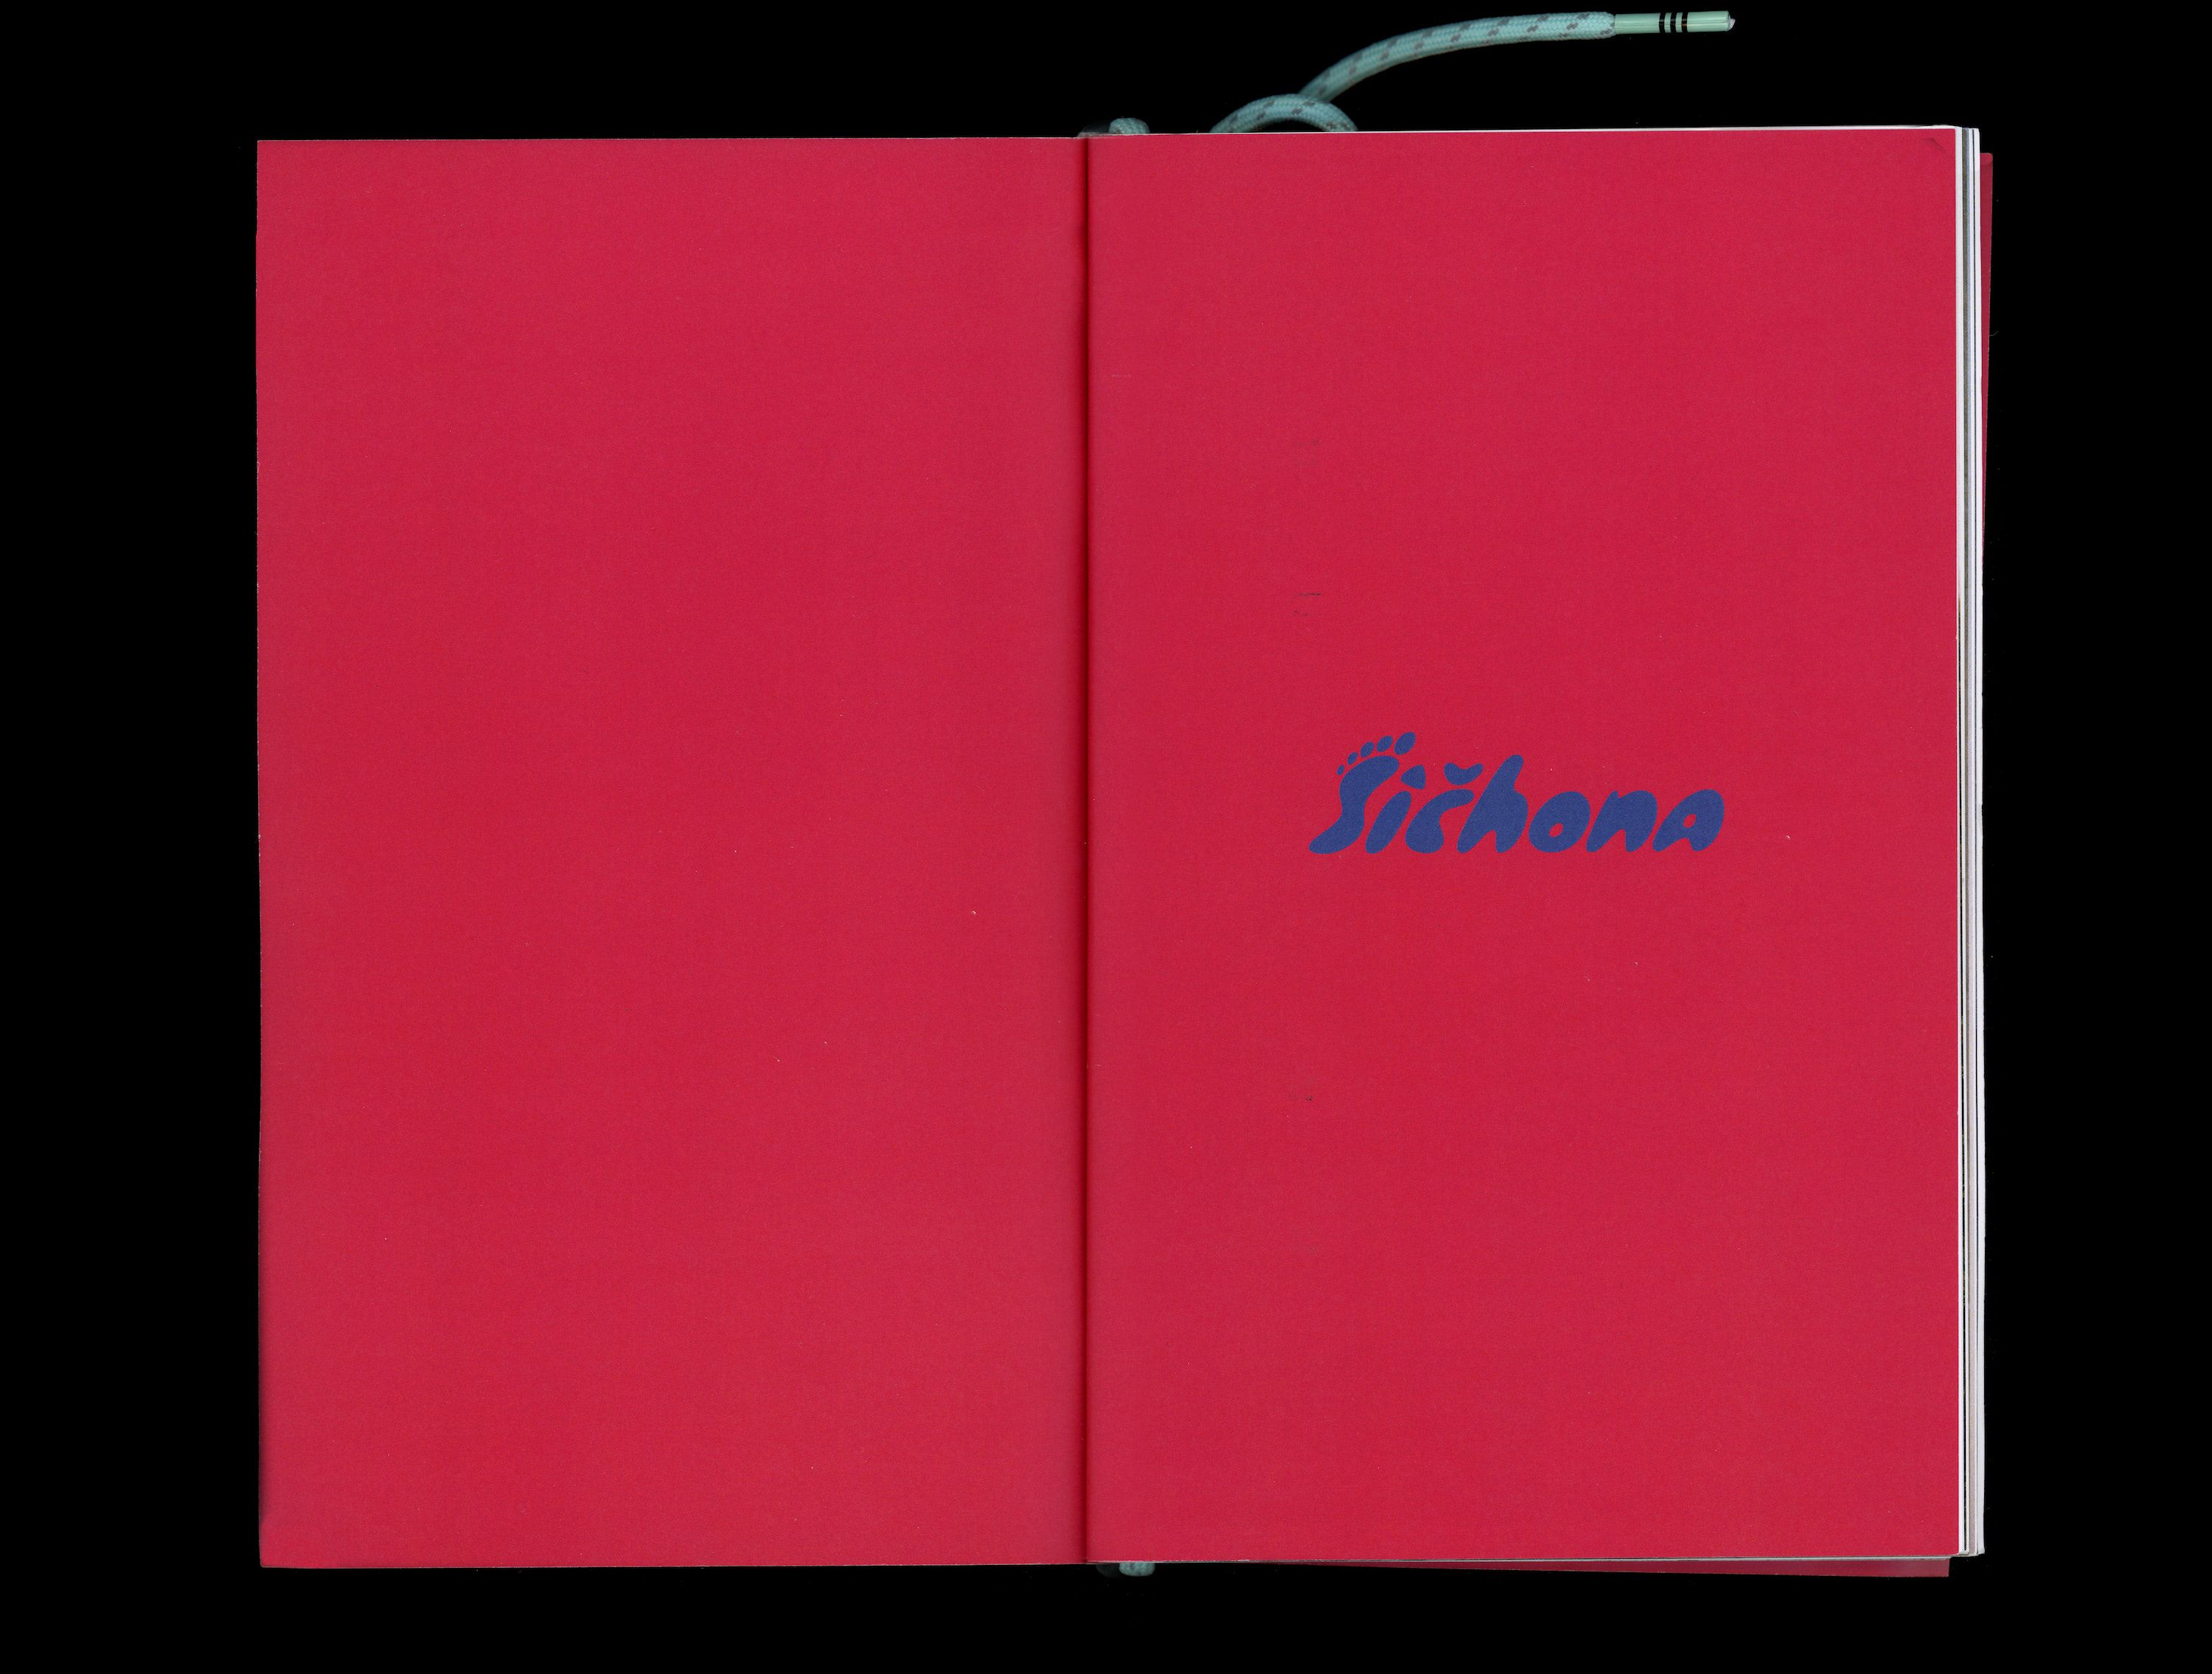 Inner cover of book with Sichona logo